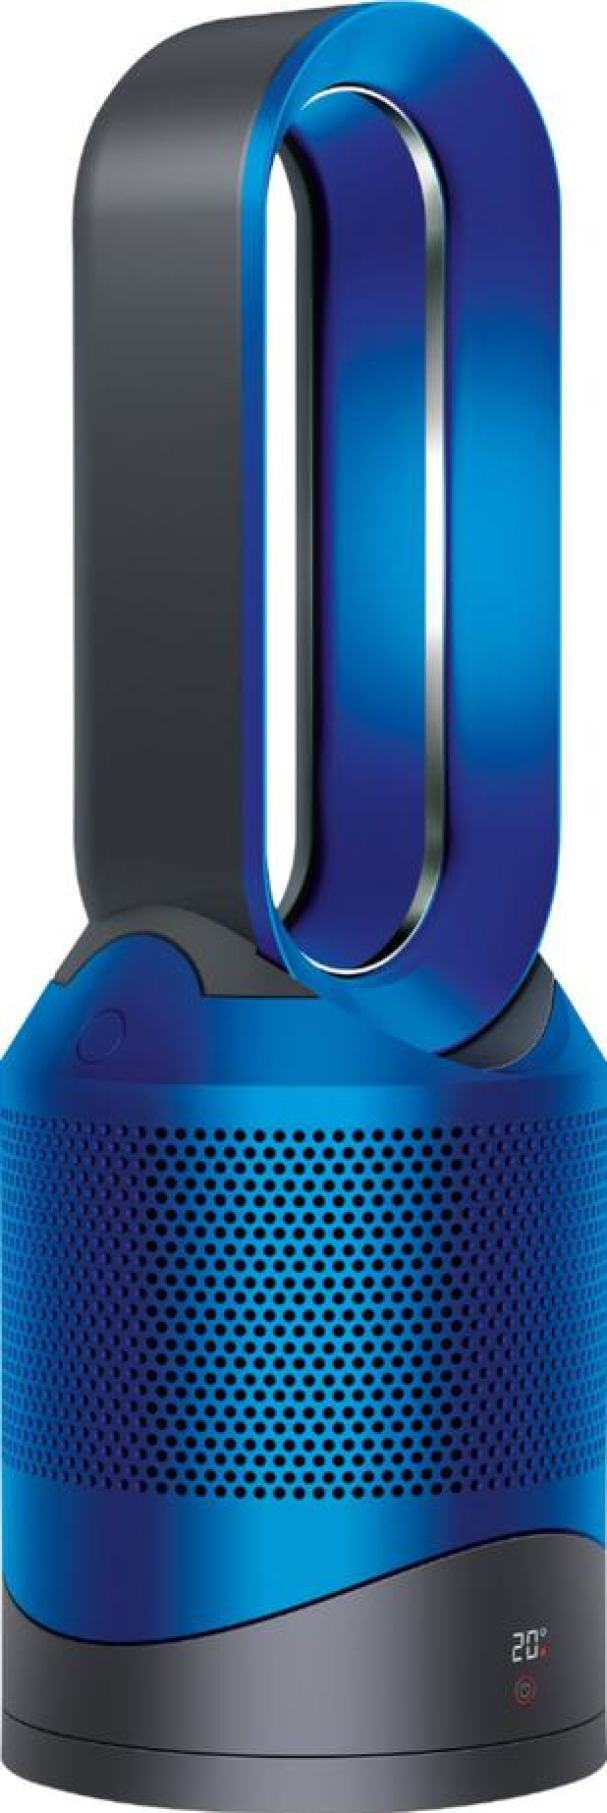 Space Heater for Your Room Dyson Pure Hot Cool, HP01